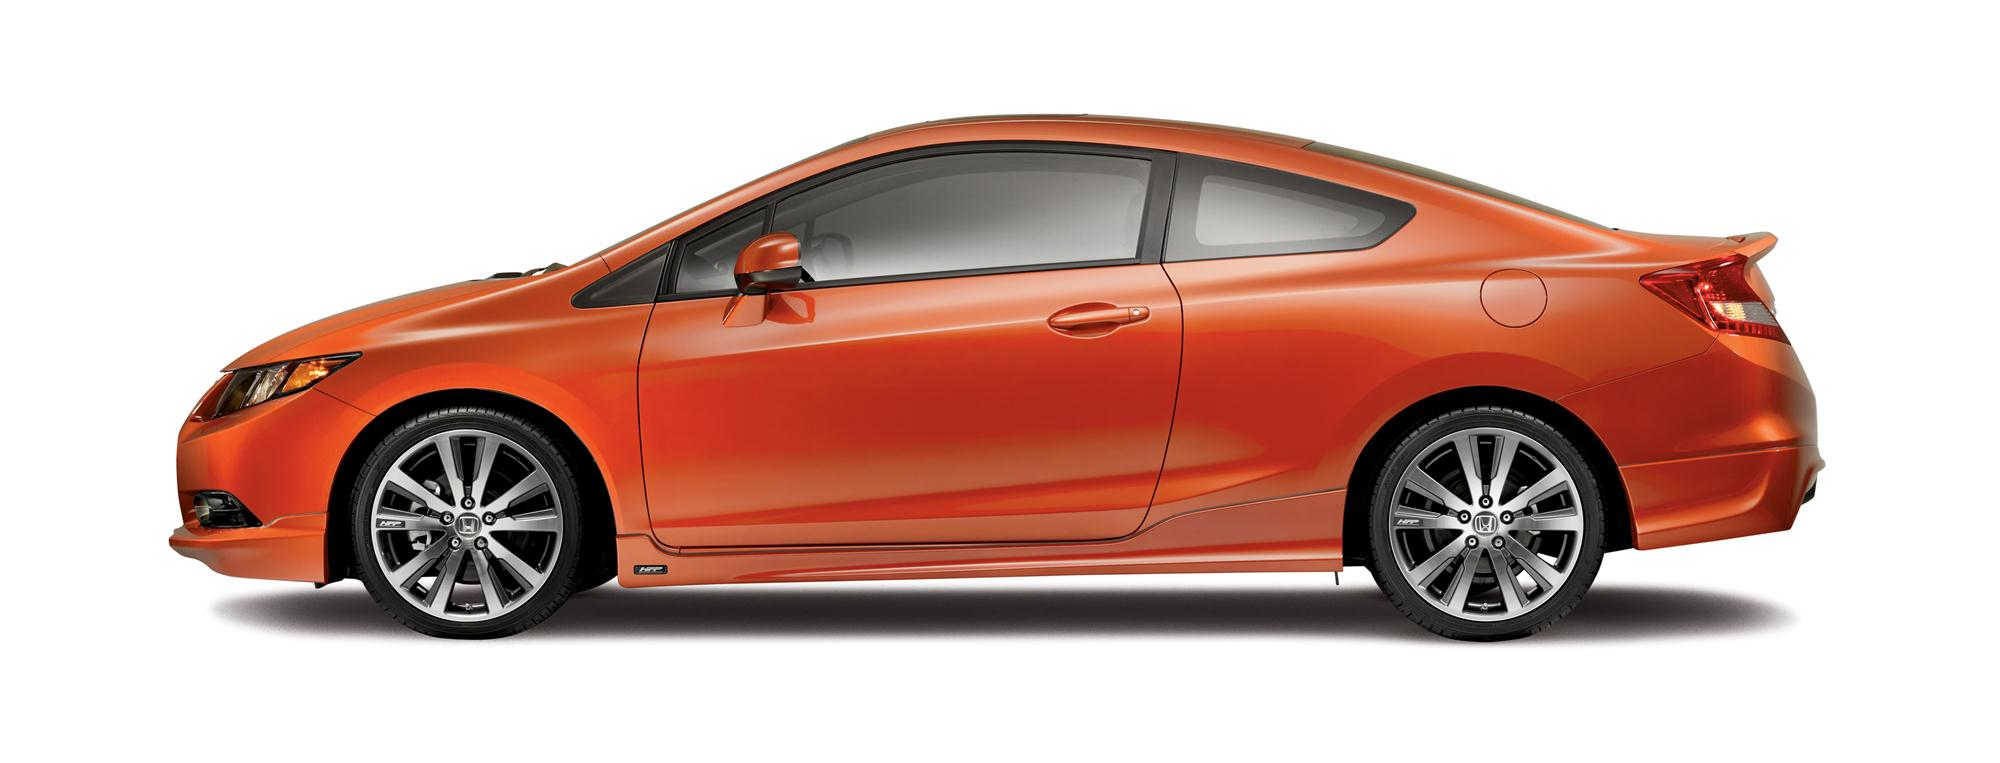 Honda civic si body in white on sale for 3 500 for Honda civic si for sale in los angeles